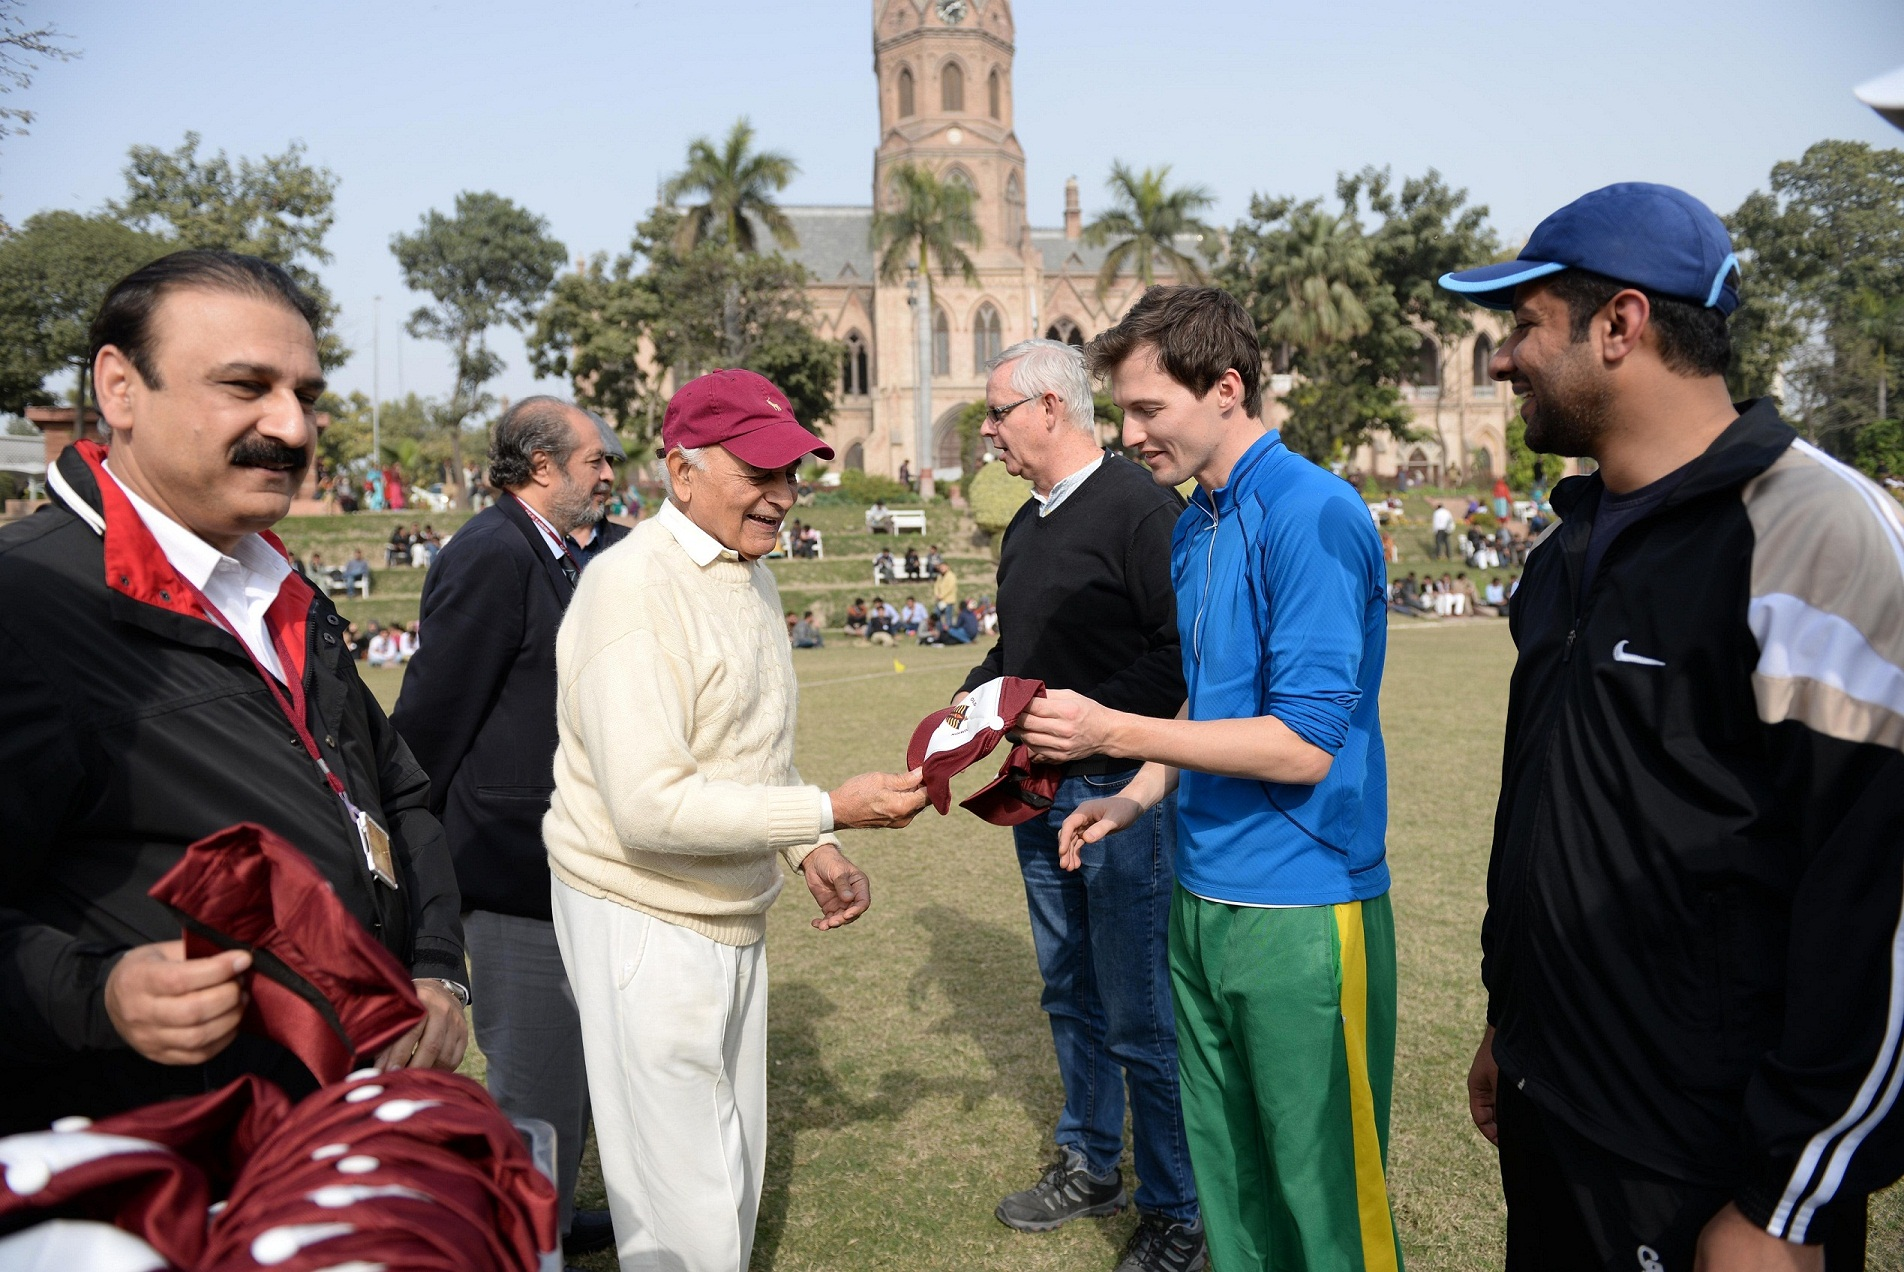 Mr. Parvez Masud giving cap to Mr. french captain of British High Commission team